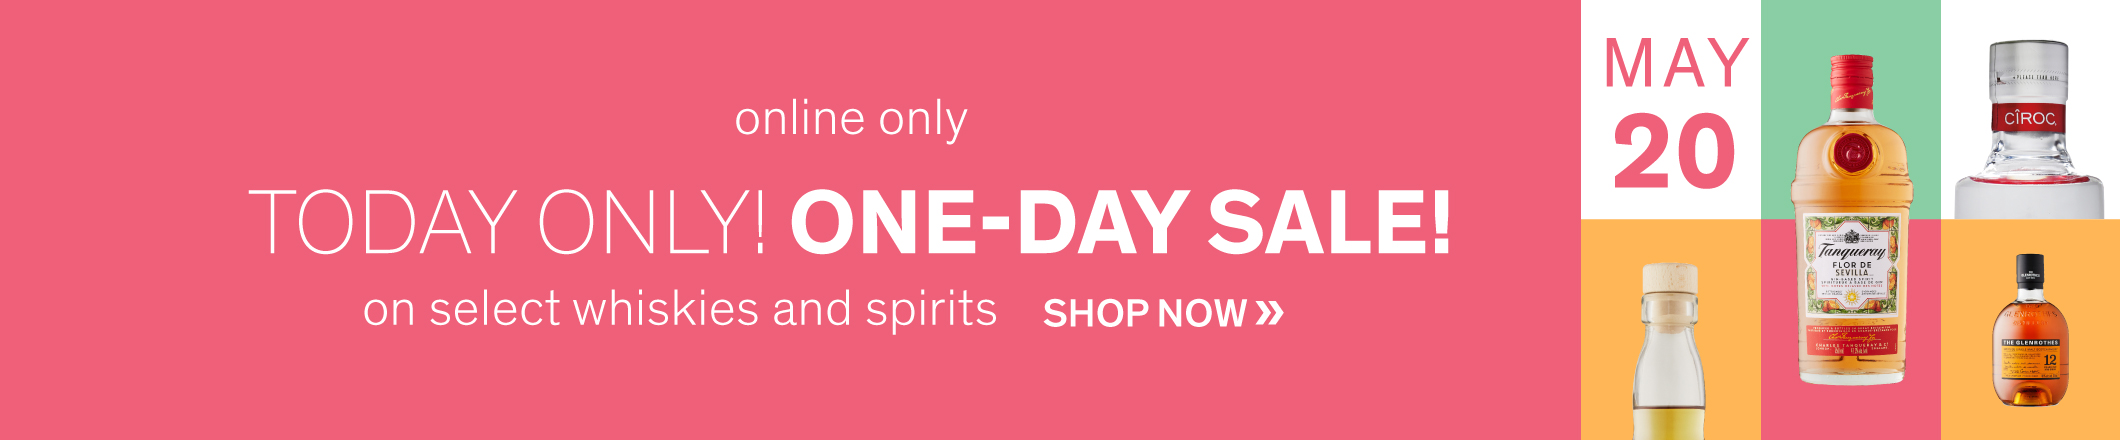 ONE-DAY SALE!